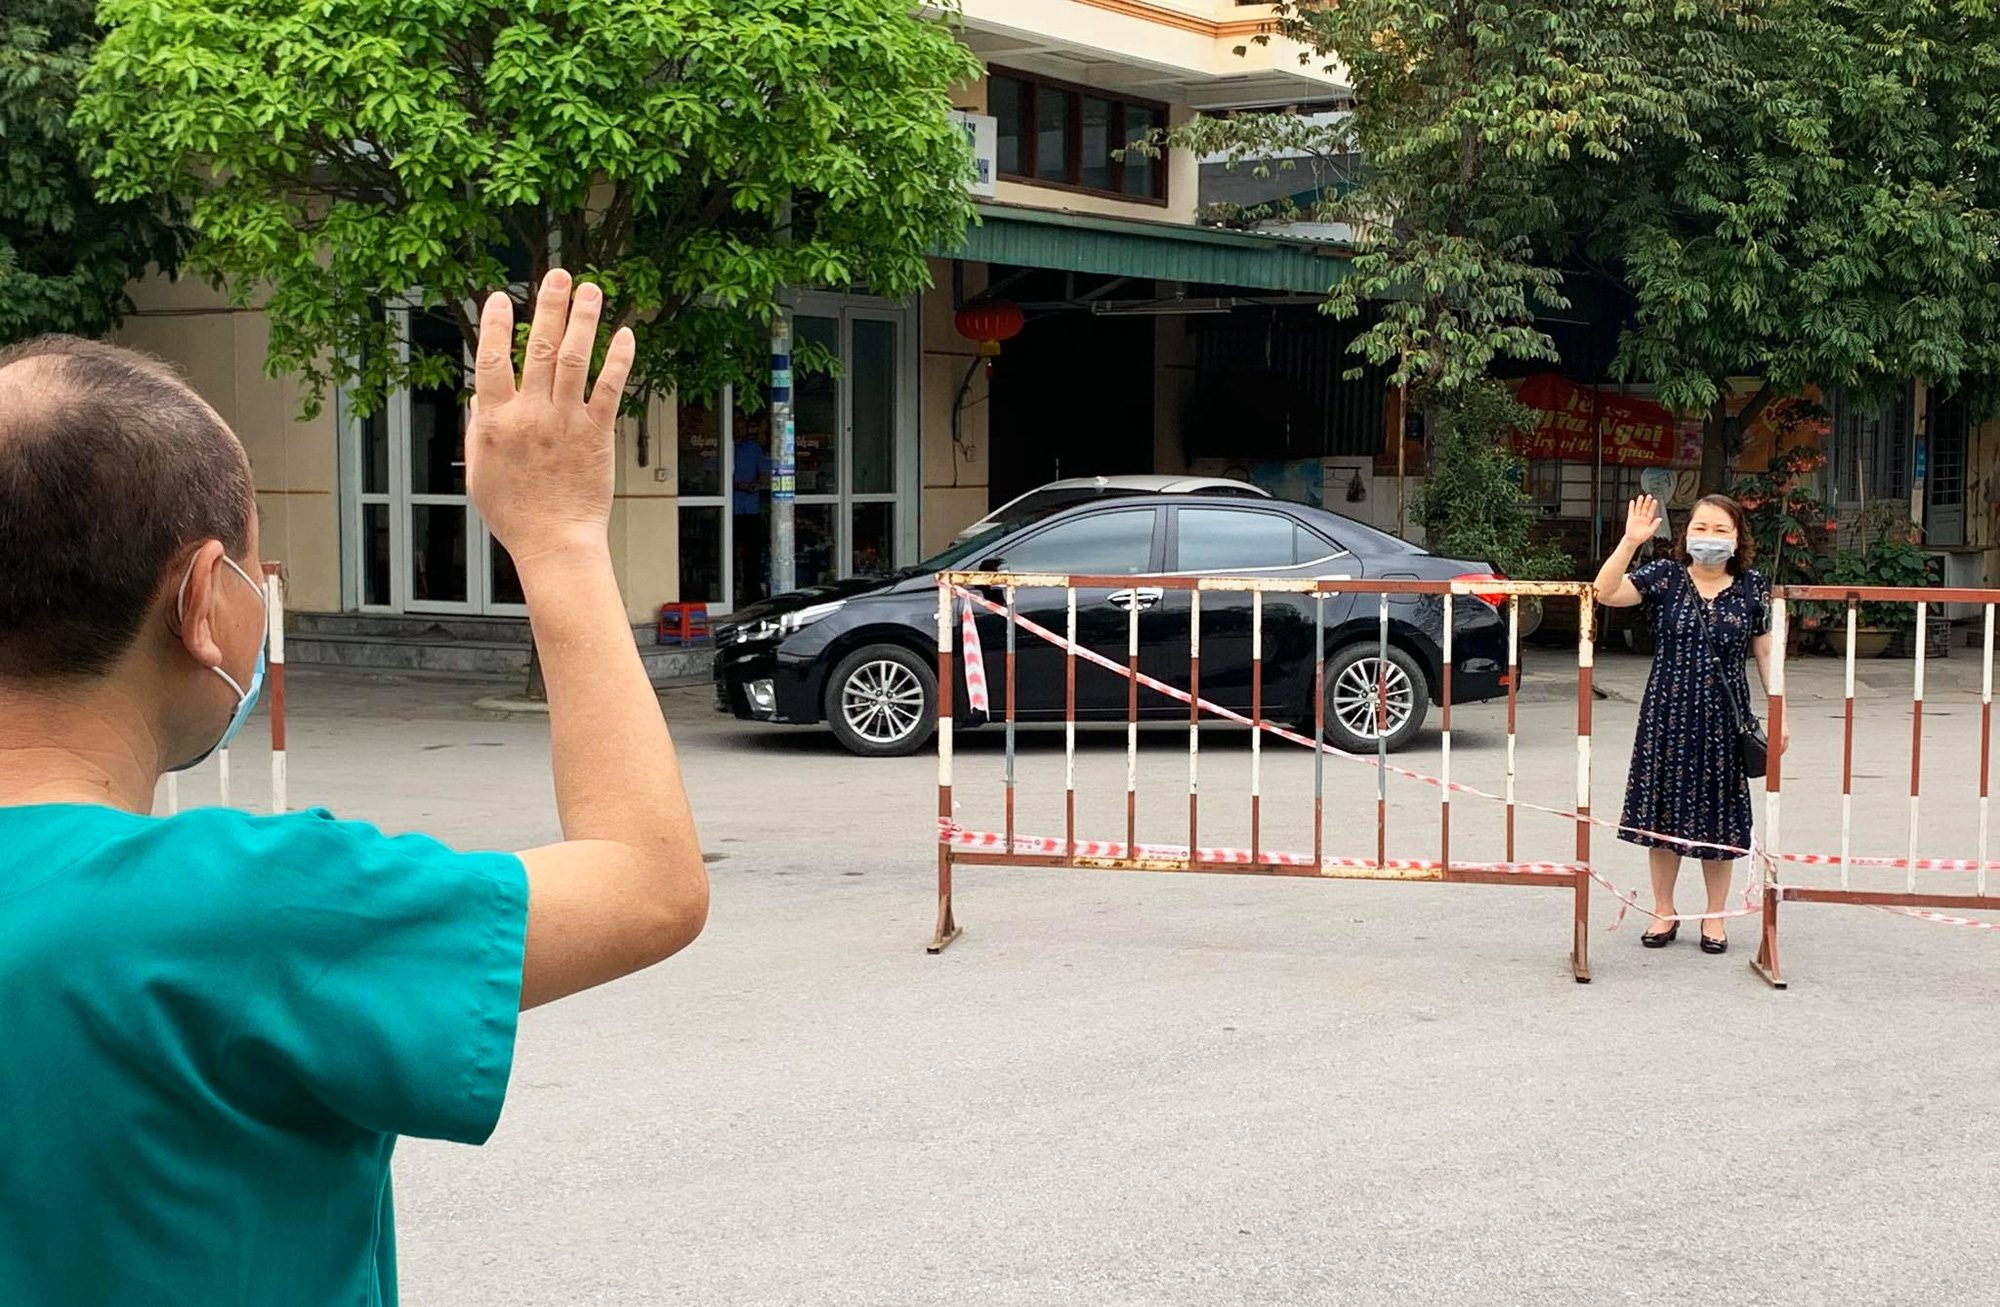 Three's a crowd: Vietnam bans gatherings of more than two as COVID-19 cases top 200